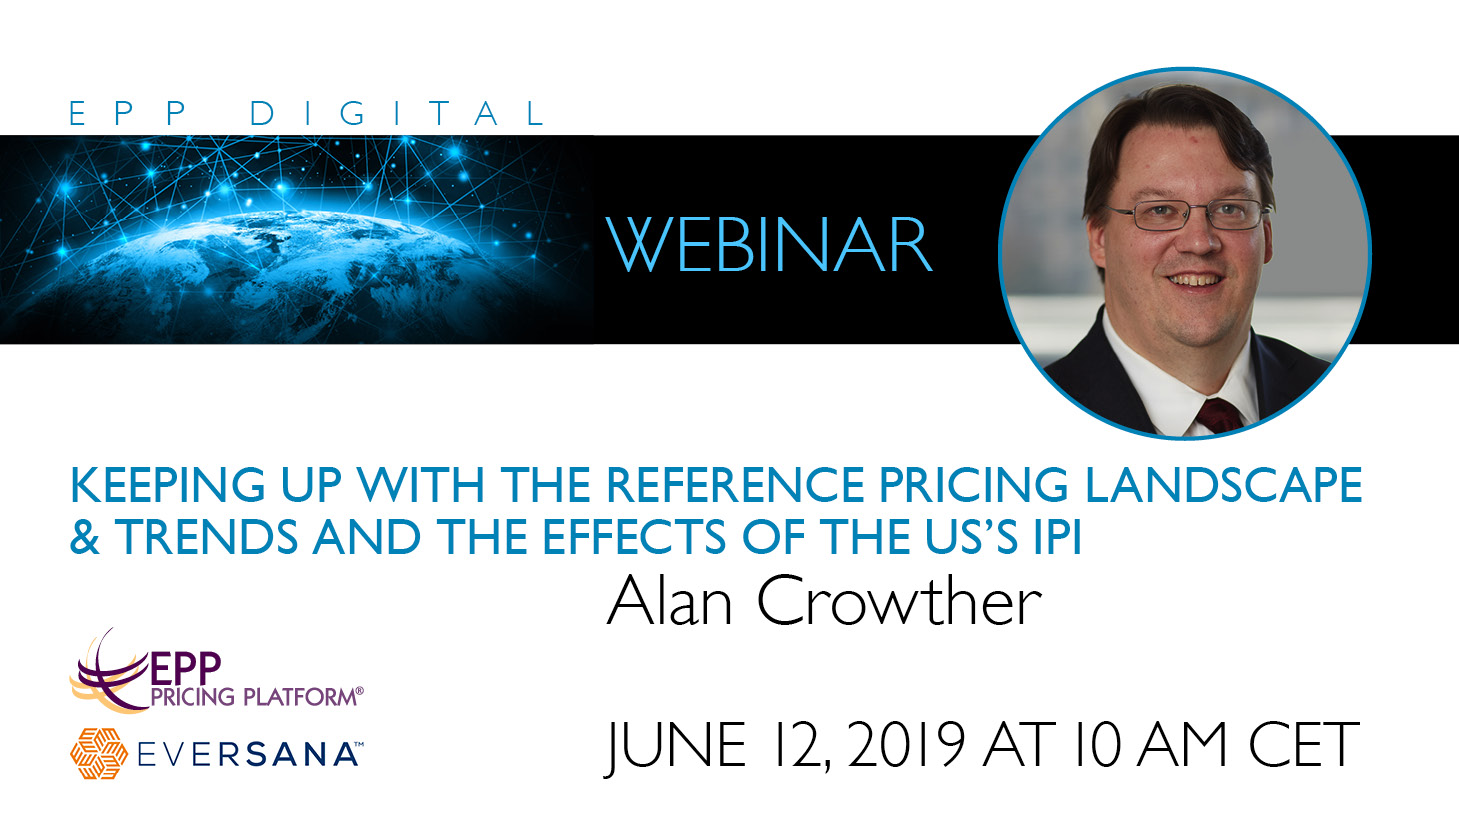 Keeping up with the reference pricing landscape & trends and the effects of the US's IPI